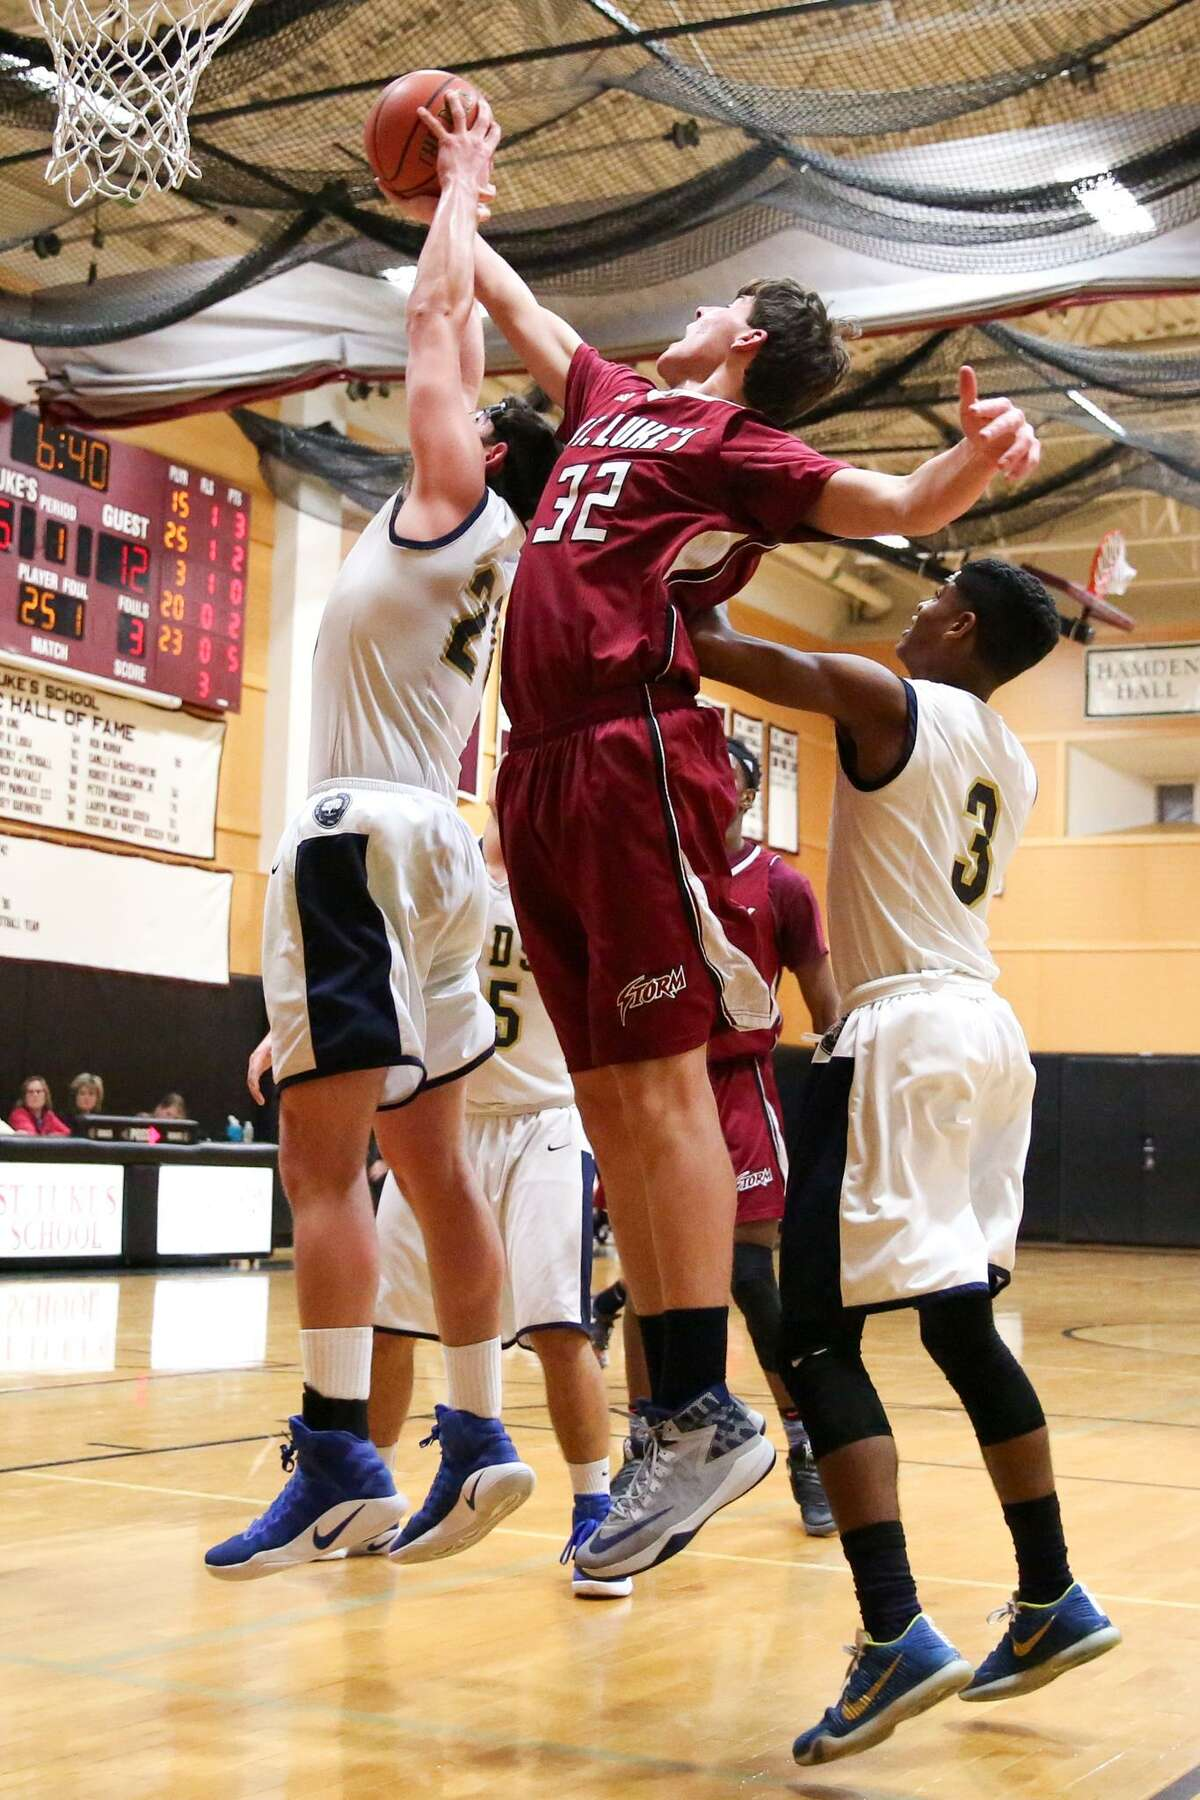 St. Luke's Porter Bowman and Rye Country Day School's Doug Kosann leap for the rebound during St. Luke's victory over the Wildcats in New Canaan, Conn. on Tuesday, Feb. 14, 2107.